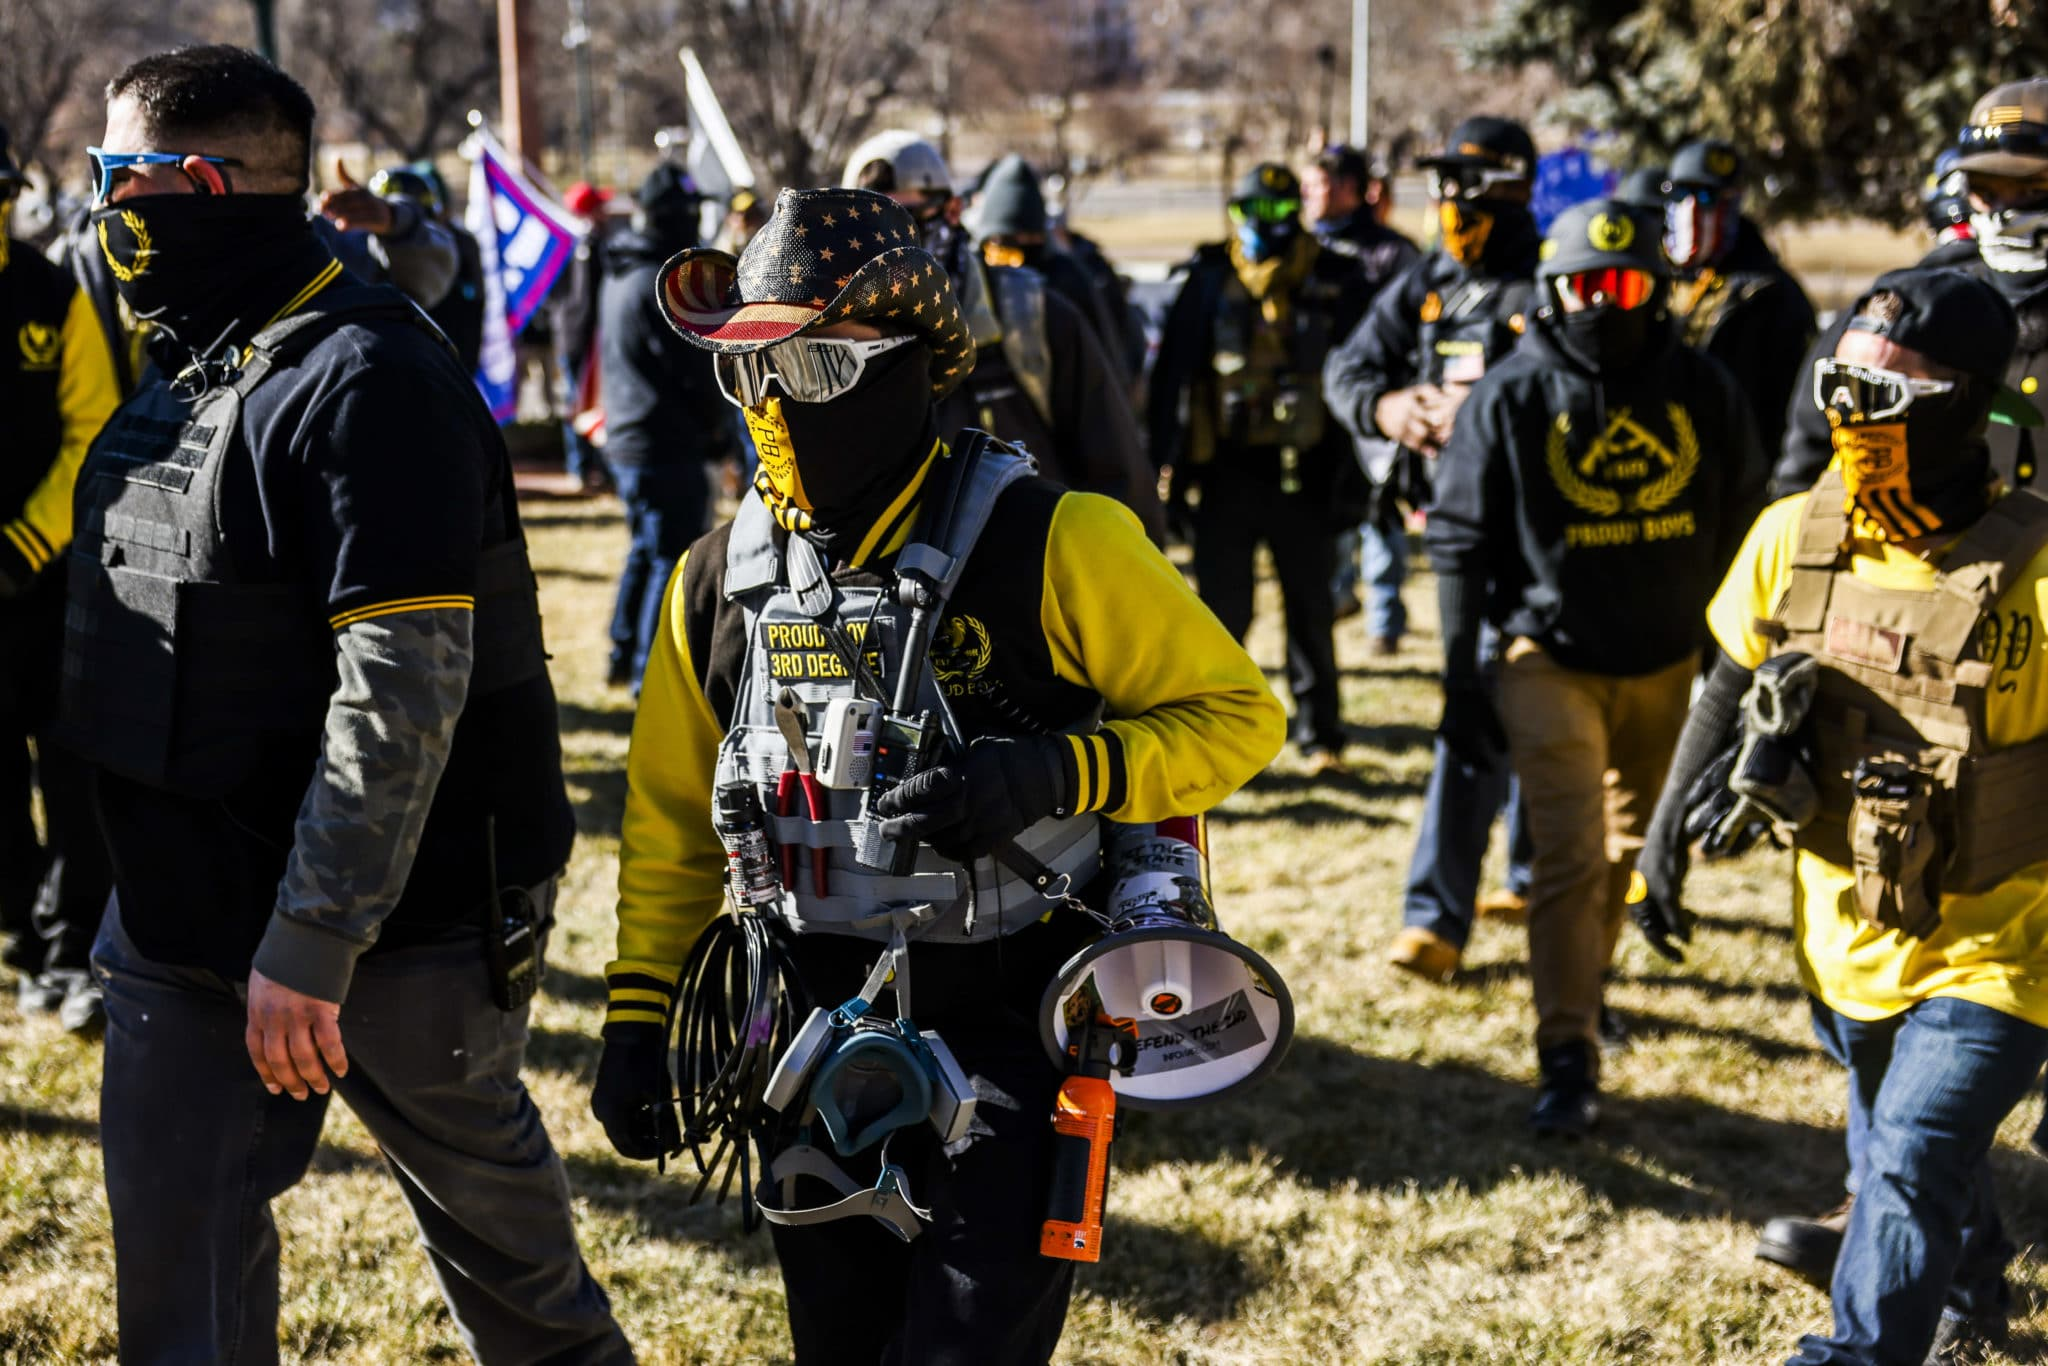 Canada's Parliament unanimously condemned the Proud Boys as a white supremacist terror organisation.